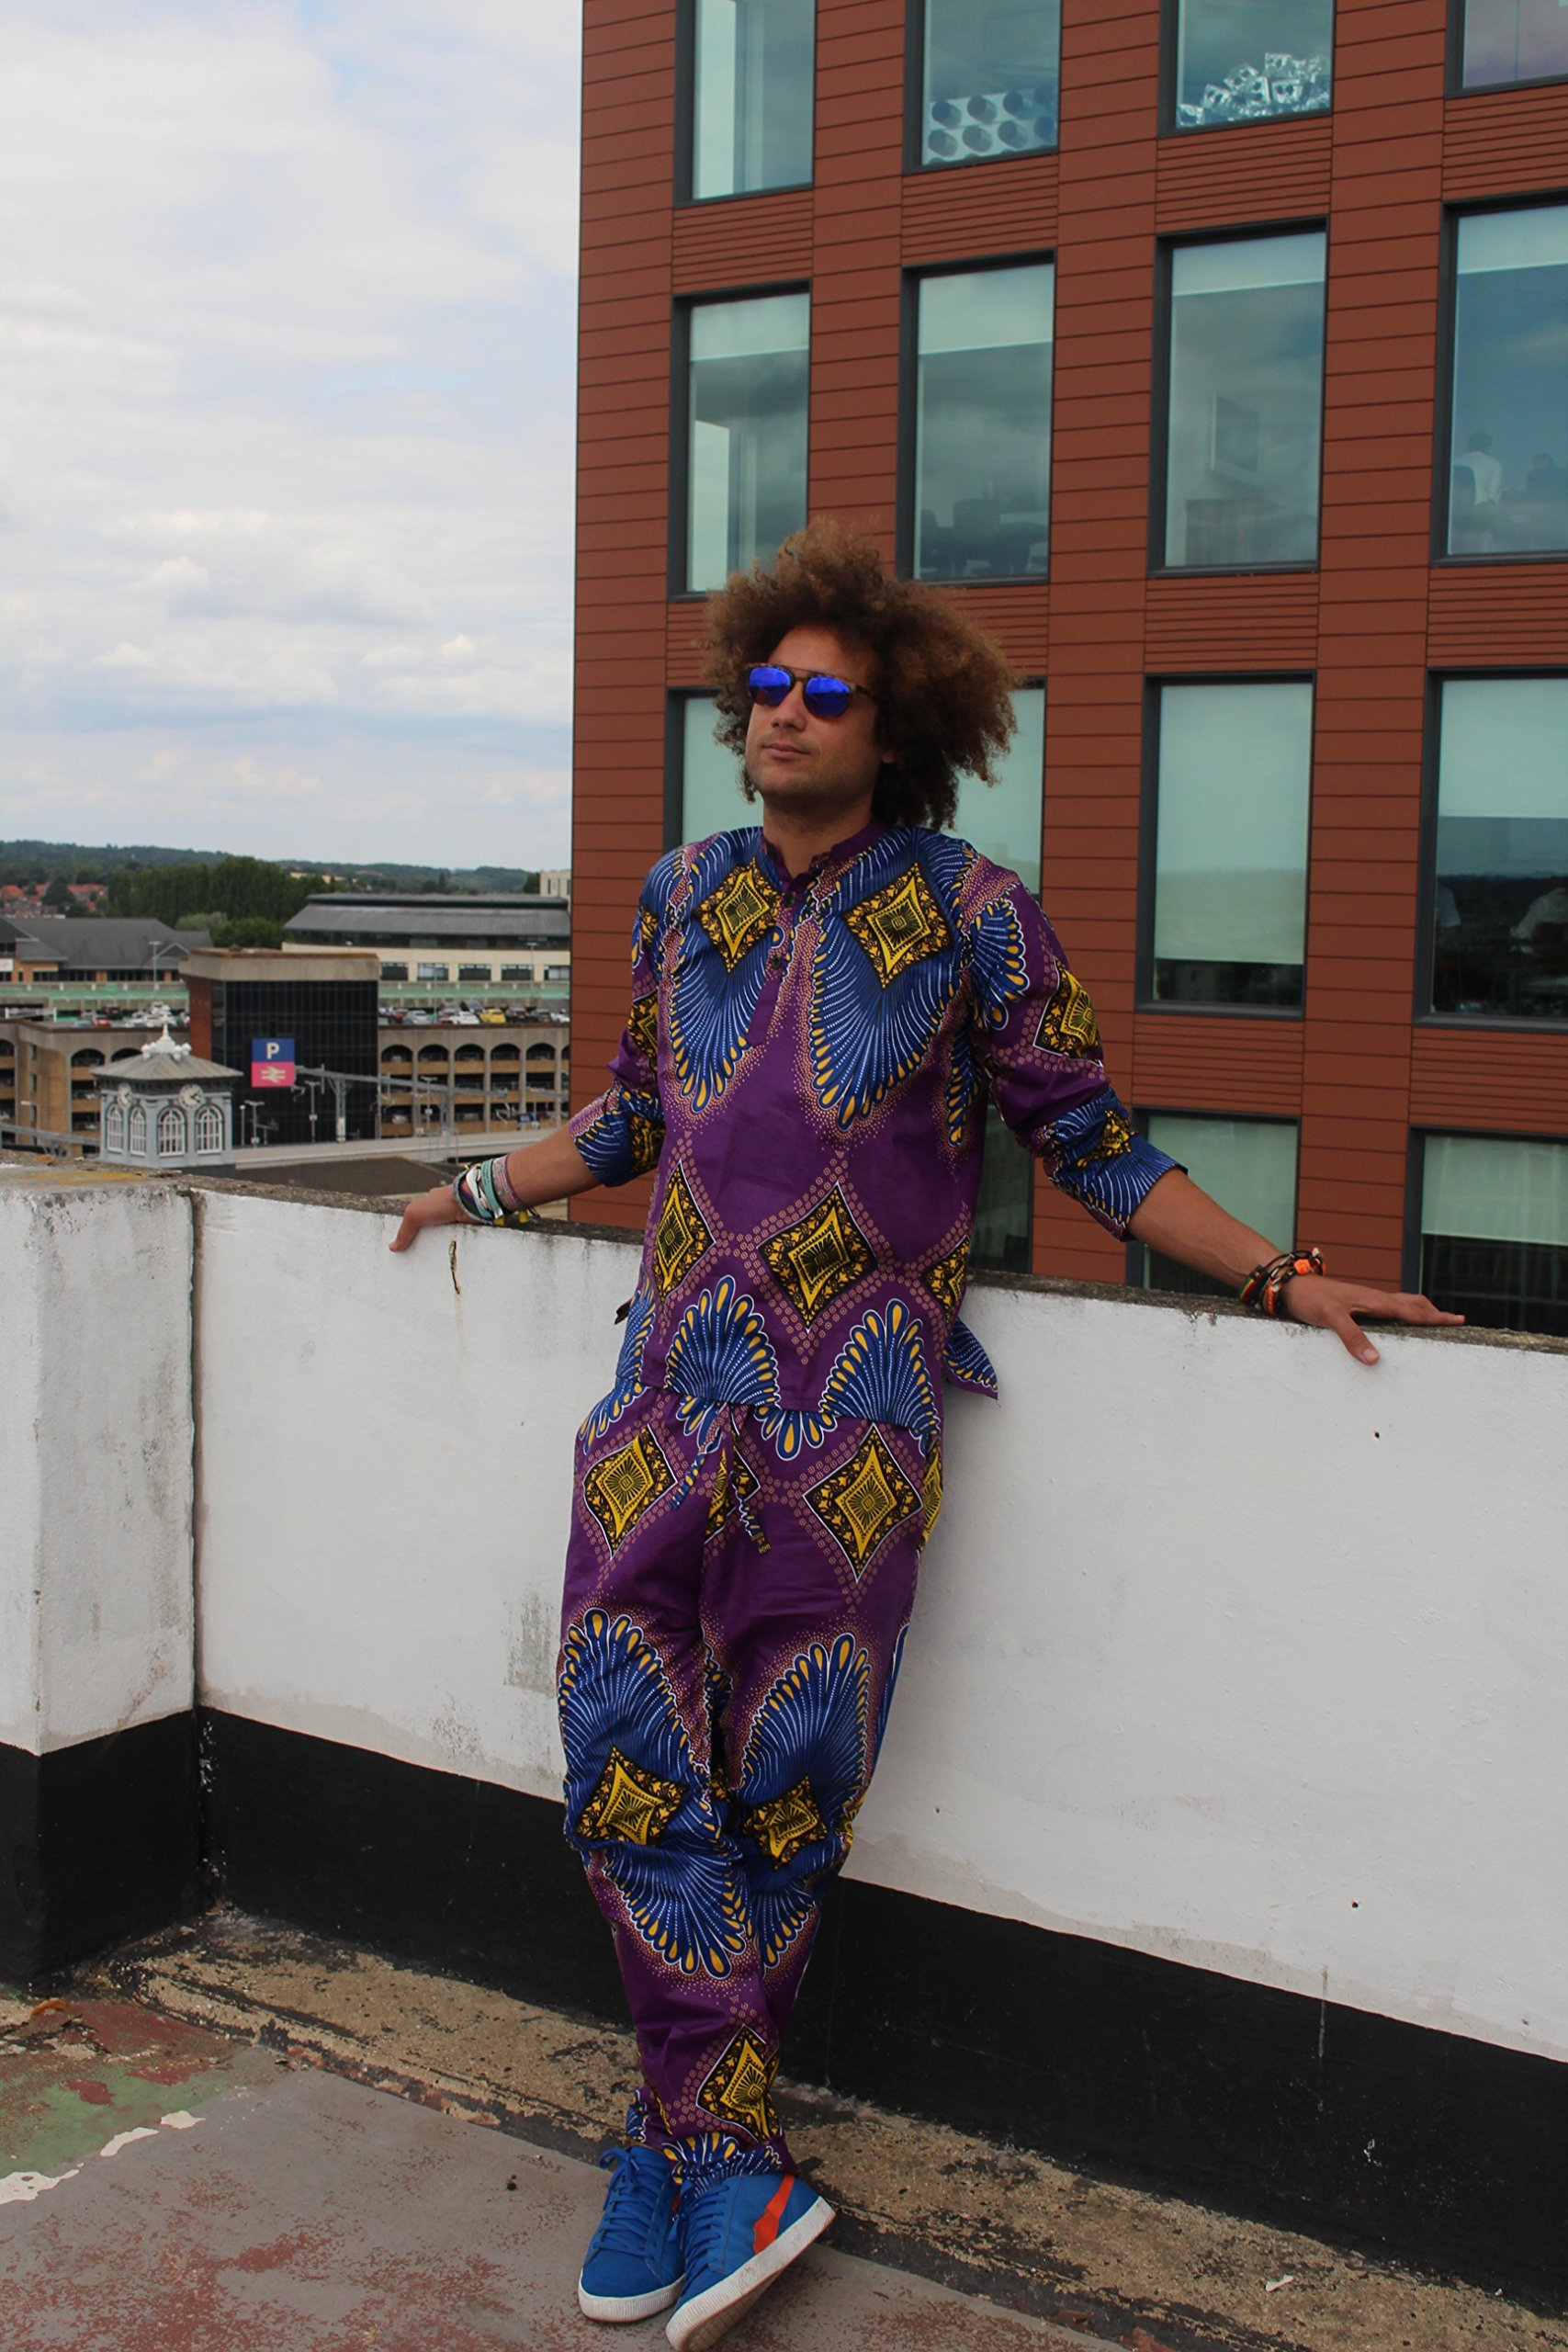 Mens Matching Suit African Two Piece Festival Clothing African Outfit Dashiki Kente Clothing Kente Outfit Ankara